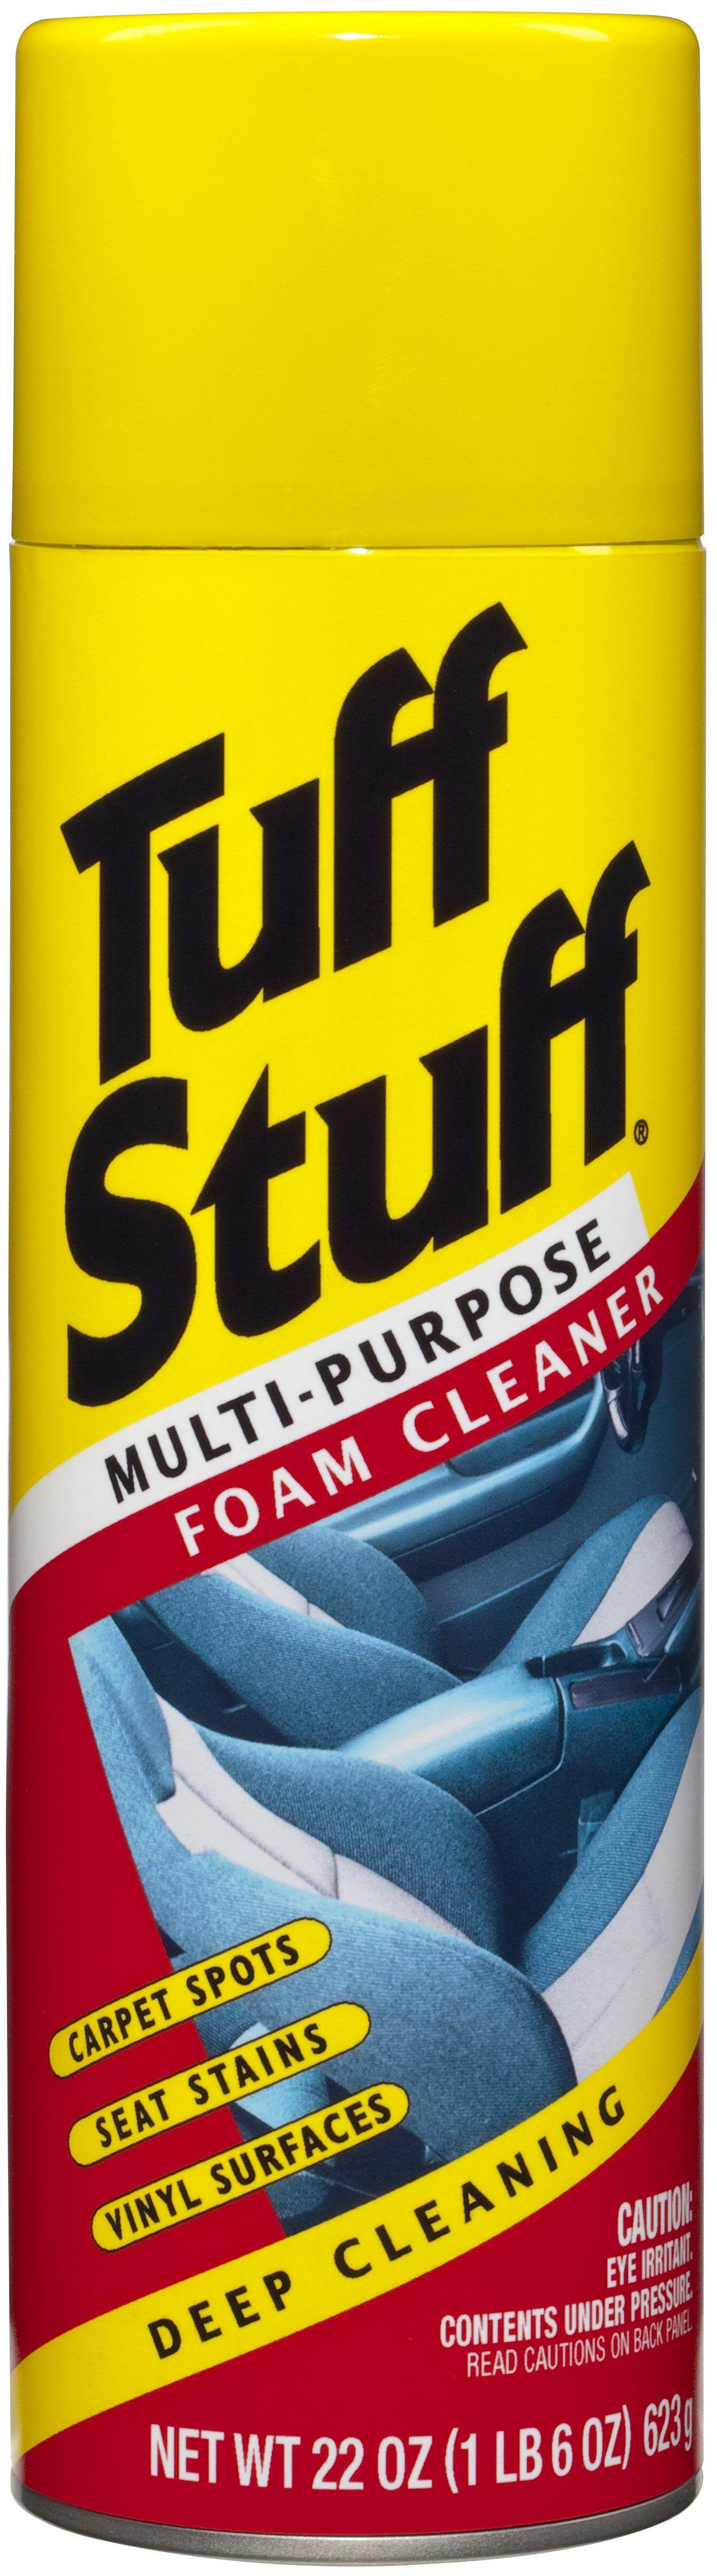 Tuff Stuff Multi Purpose Foam Cleaner for Deep Cleaning - 650ml